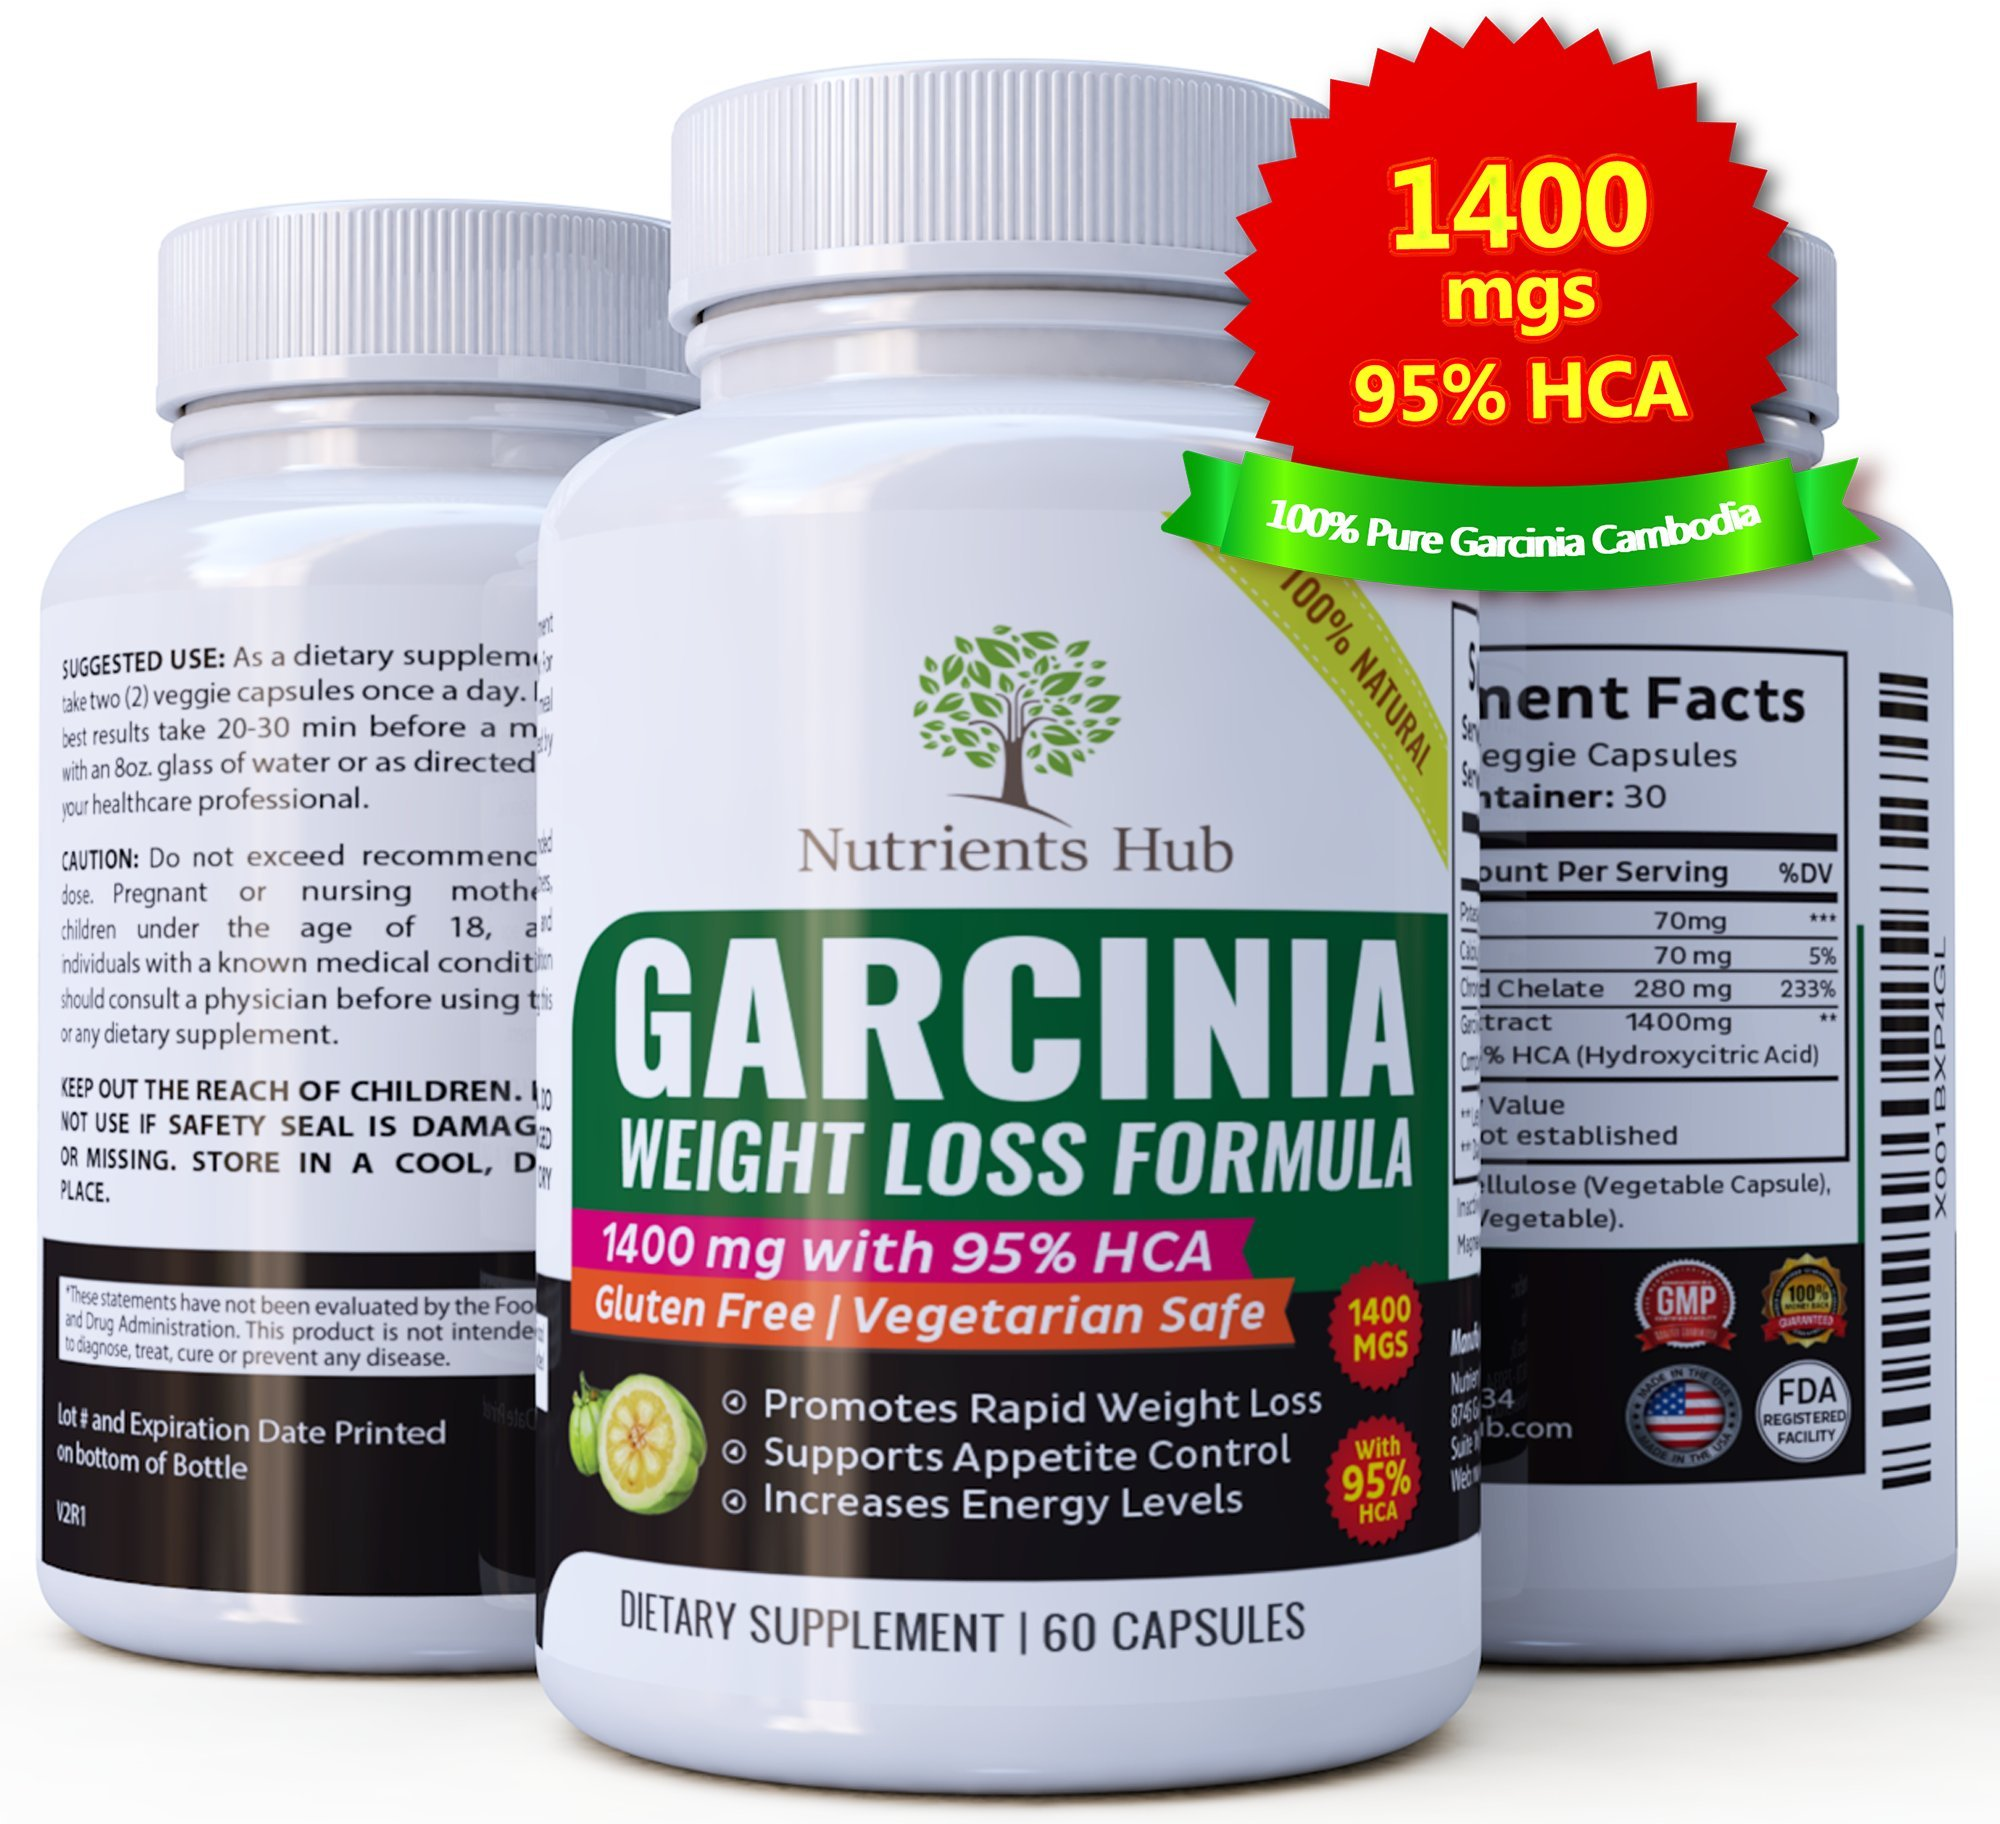 GARCINIA FOR HER 100% Pure Garcinia Cambogia 1400mgs - 95% HCA Extract 60 Veggie Weight Loss pills, Natural Appetite Suppressant, Carb Blocker and Fat Burner Weight Loss Supplement for Women & Men